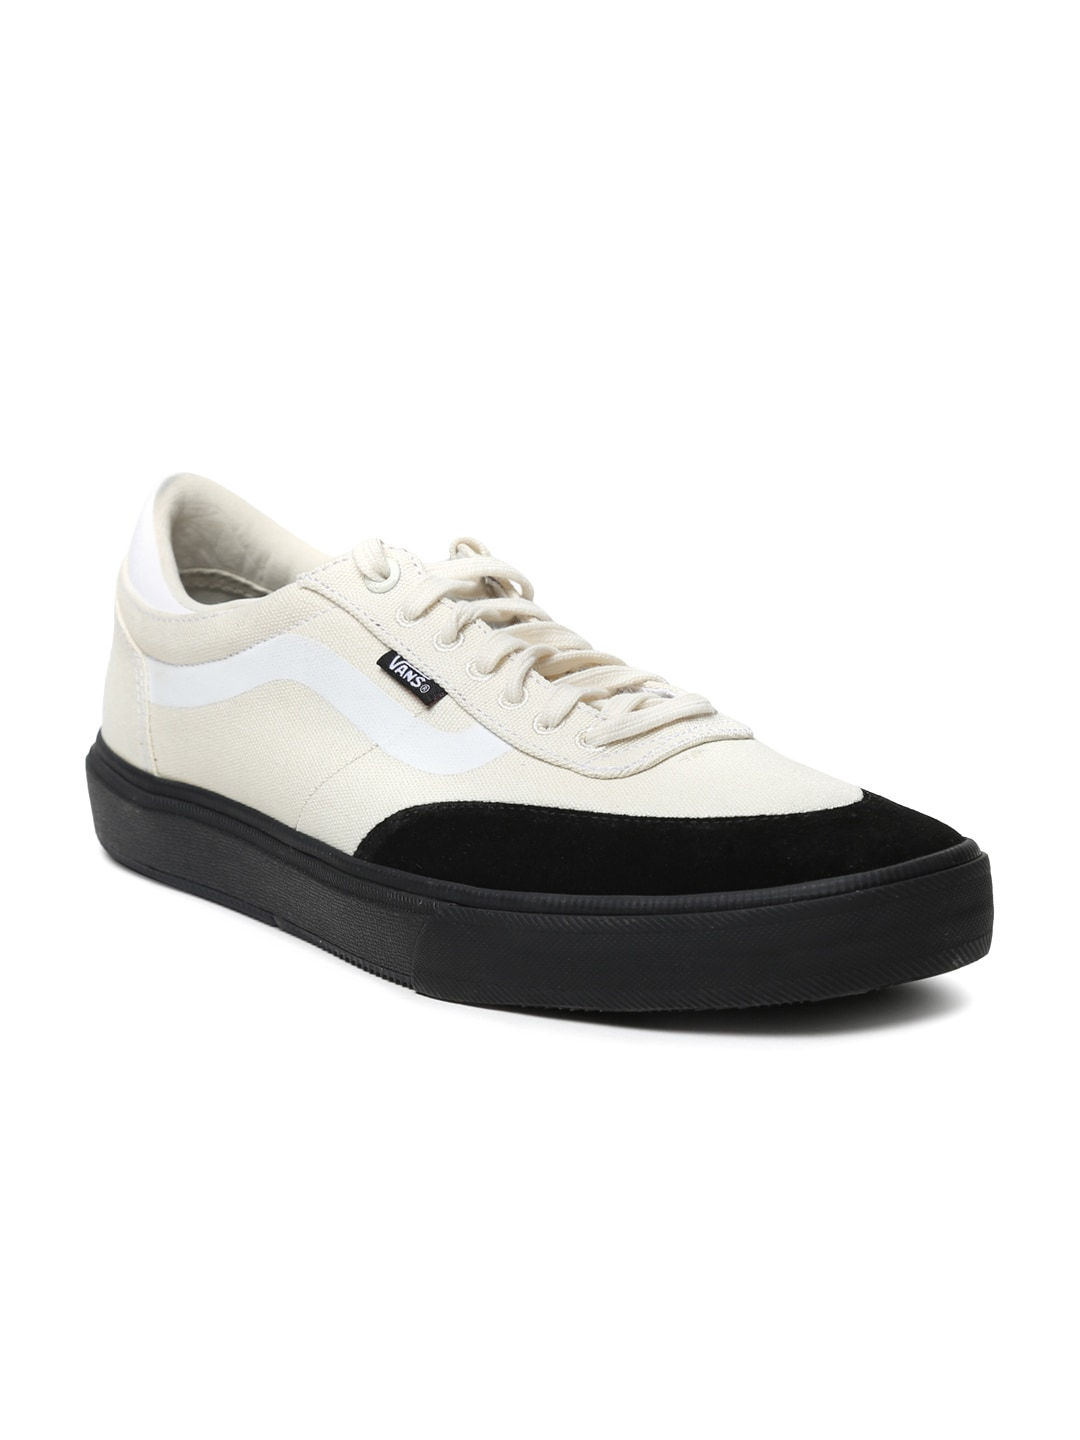 6167d18338745b Vans Casual Shoes - Buy Vans Casual Shoes Online in India